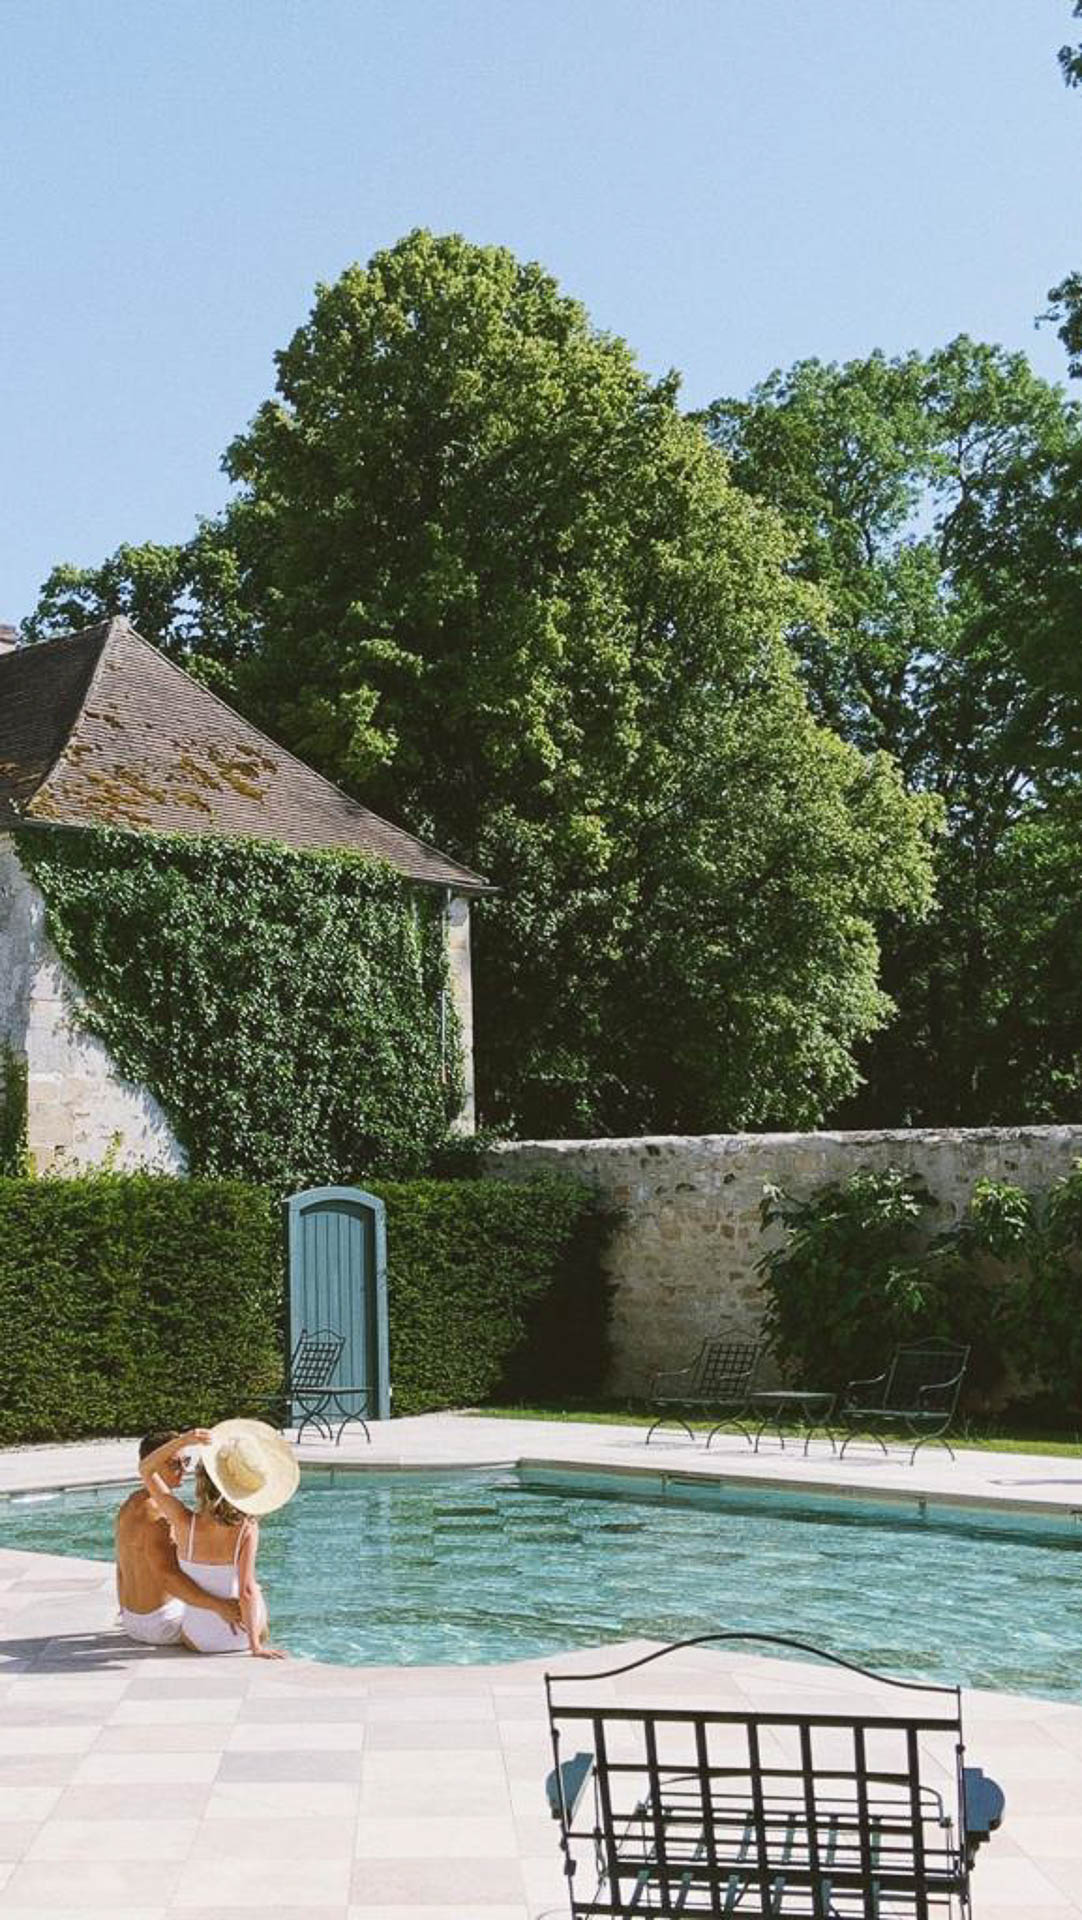 Chateau de Villette Paris The Heritage Collection luxury property exclusive rent rental destination weddings luxe travel accommodation high level services swimming pool party